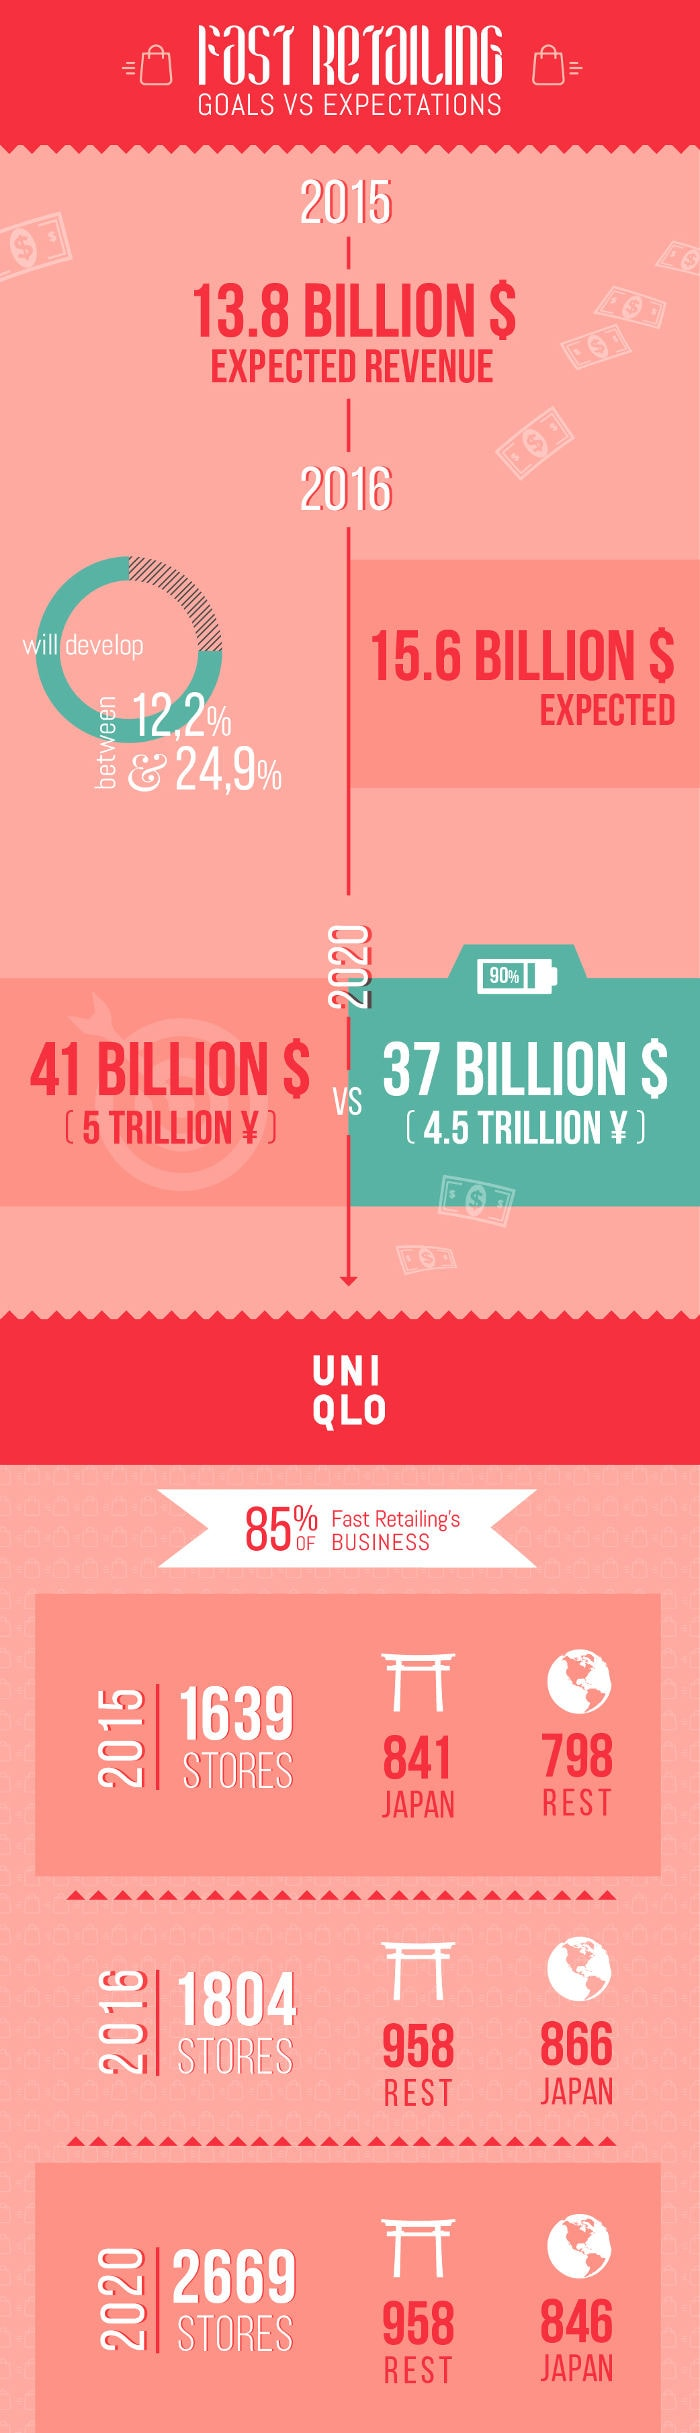 Infographic - How realistic is Fast Retailing's 2020 goal?